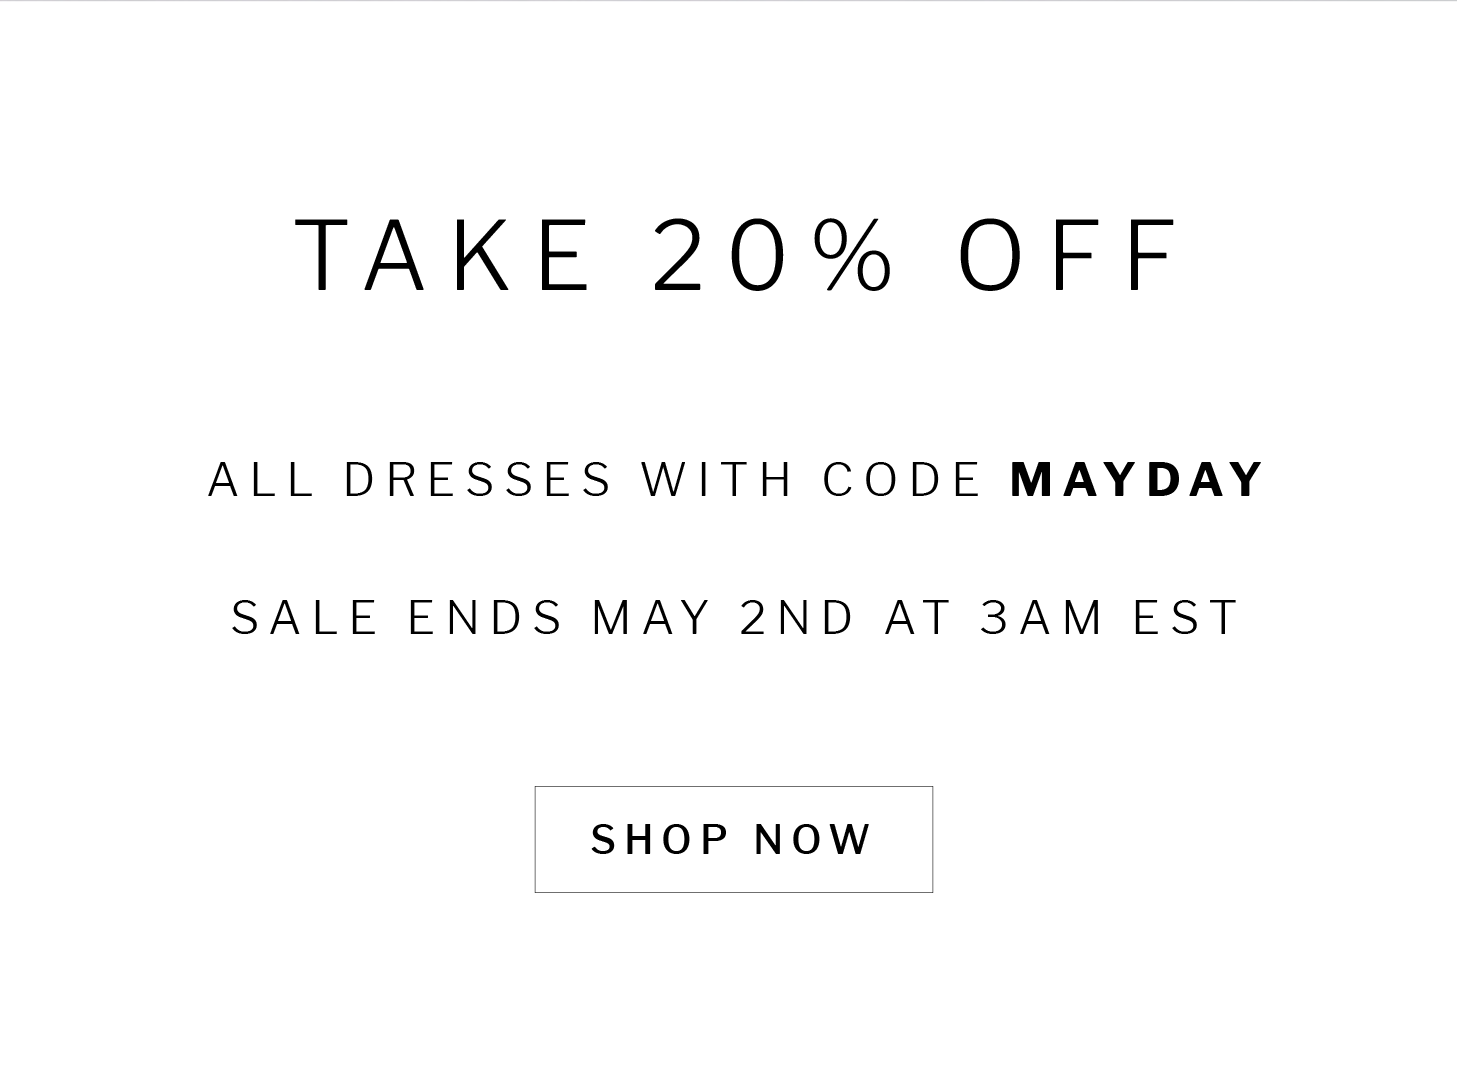 take 20% off all dresses